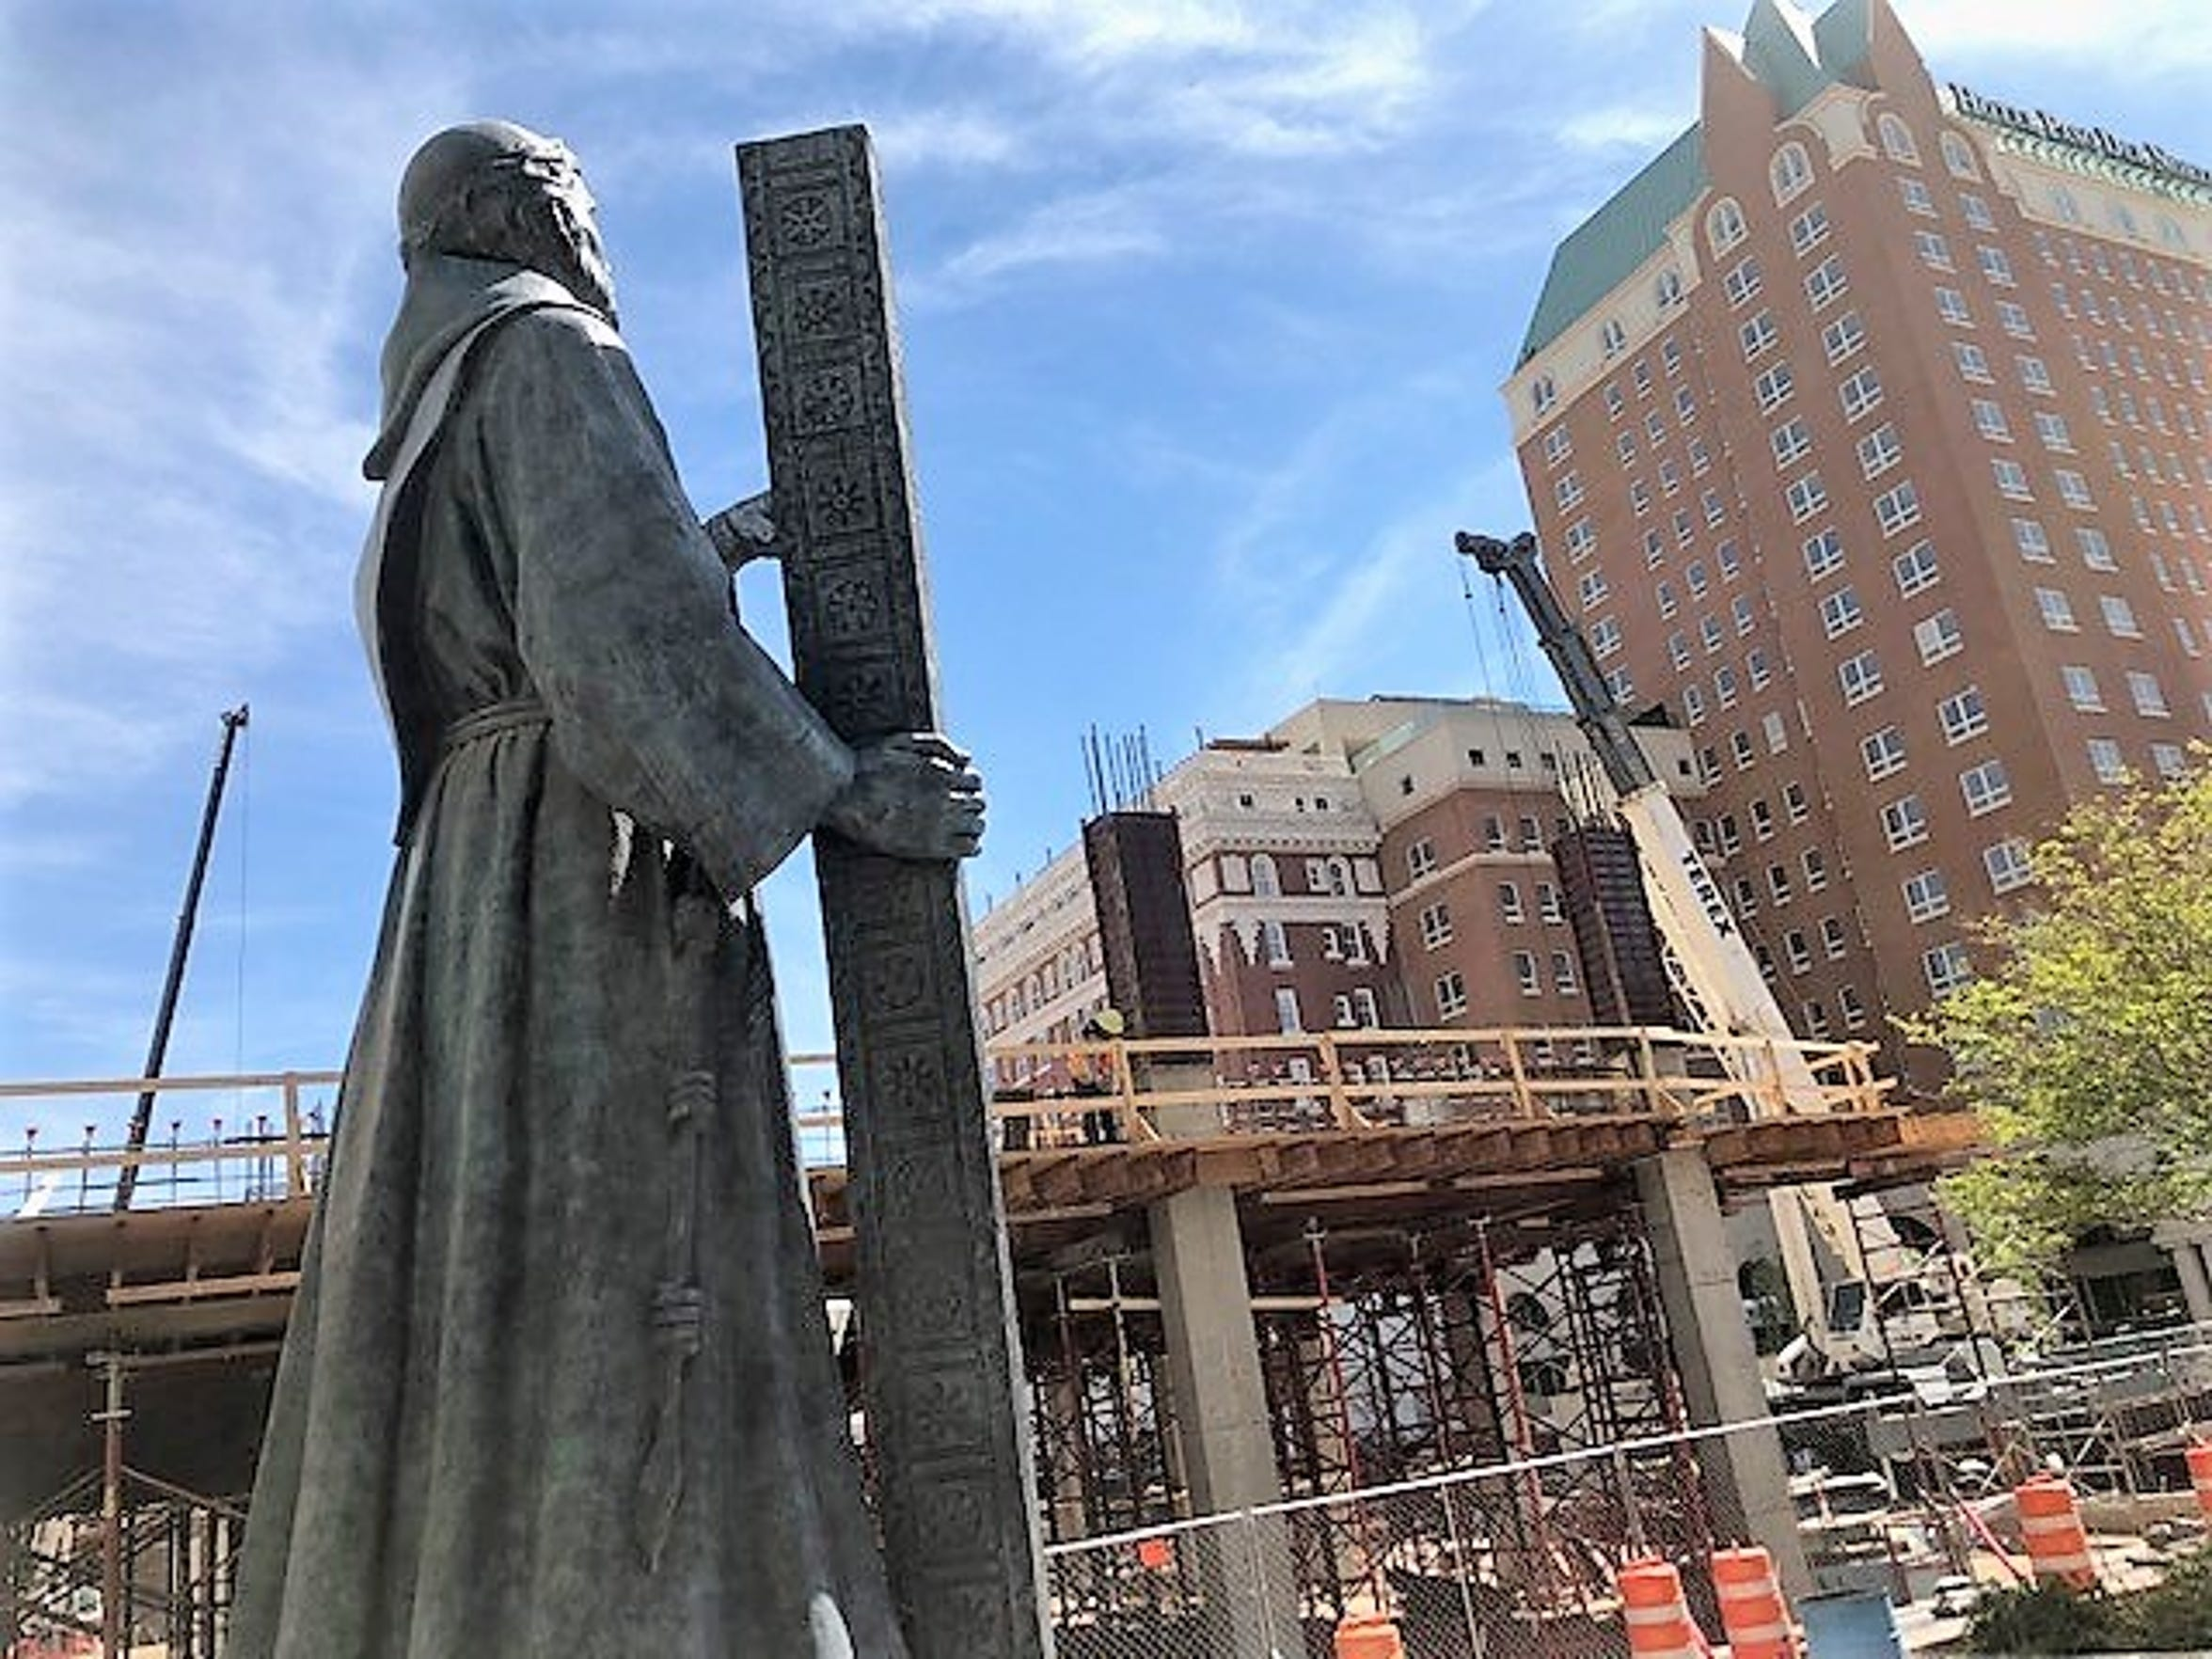 A statue of Fray Garcia de San Francisco, the priest that founded this area's first mission, stands in Pioneer Plaza, next to where the Plaza Hotel parking garage is being built in Downtown El Paso.